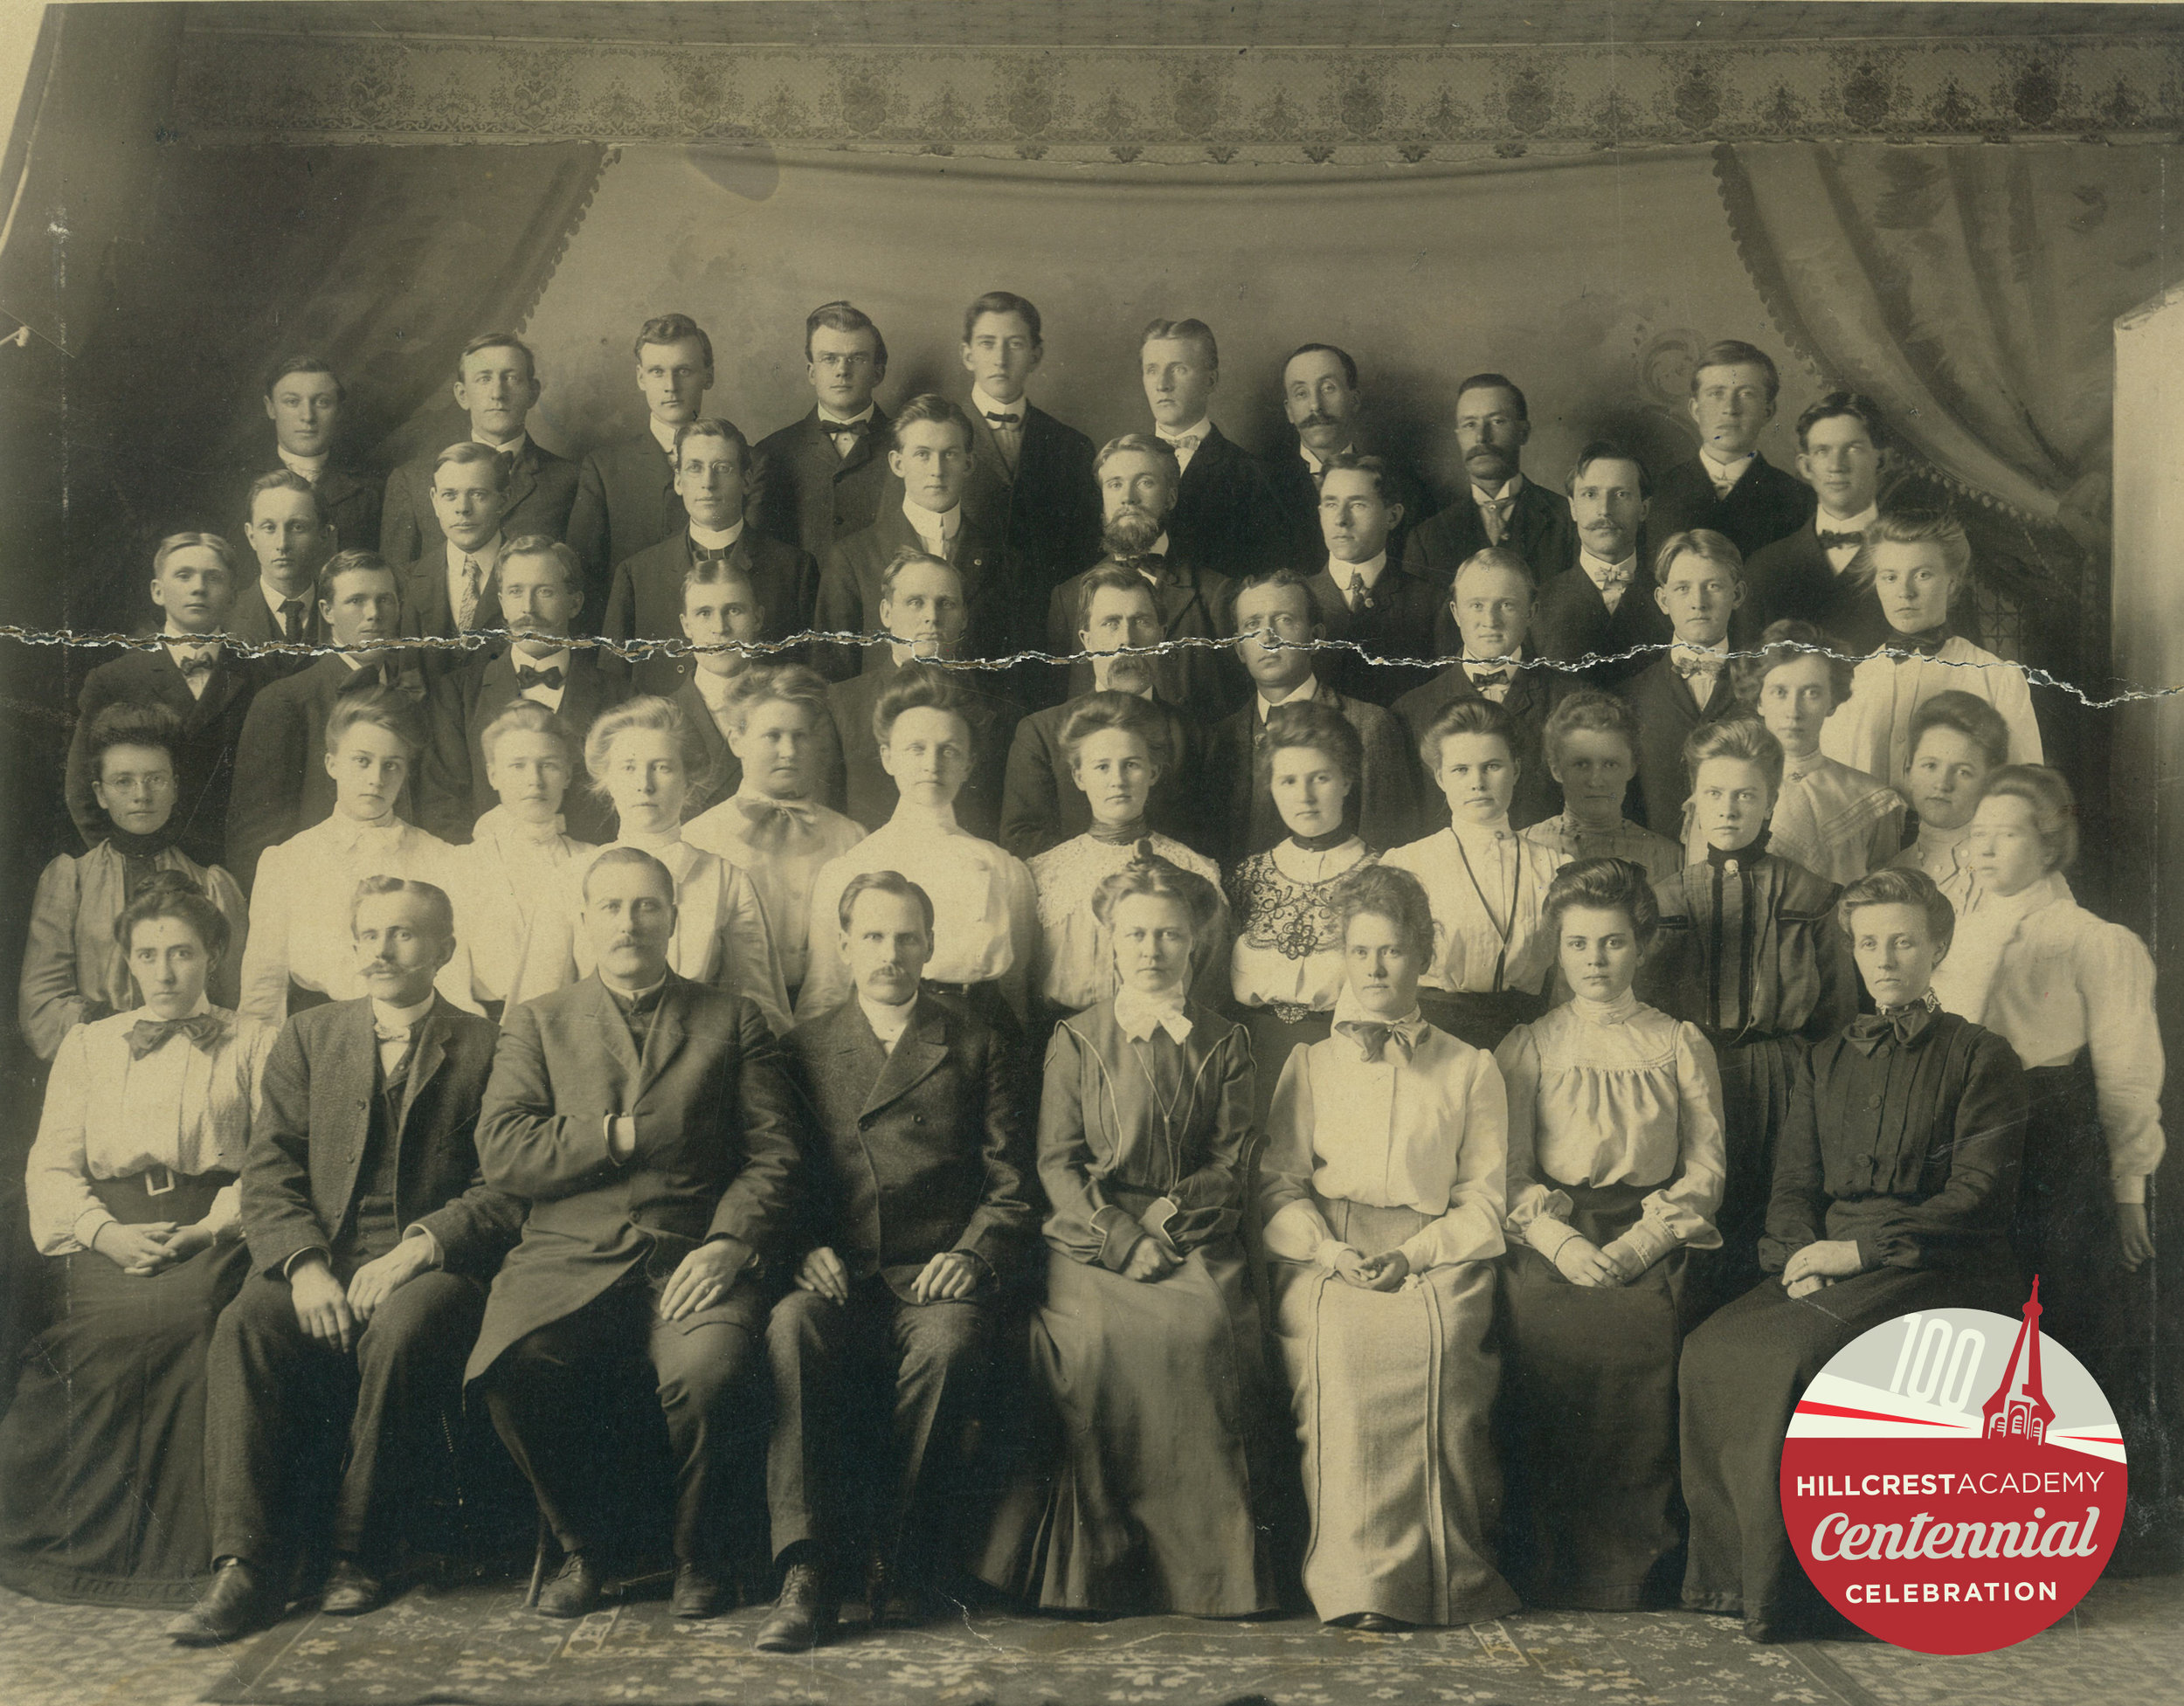 Professor E.M. Broen sits third from the left. Future Chinese missionary, Marie Harstad, stands first from the left in the second row. This is the student body for the Lutheran Brethren Bible School 1903-04